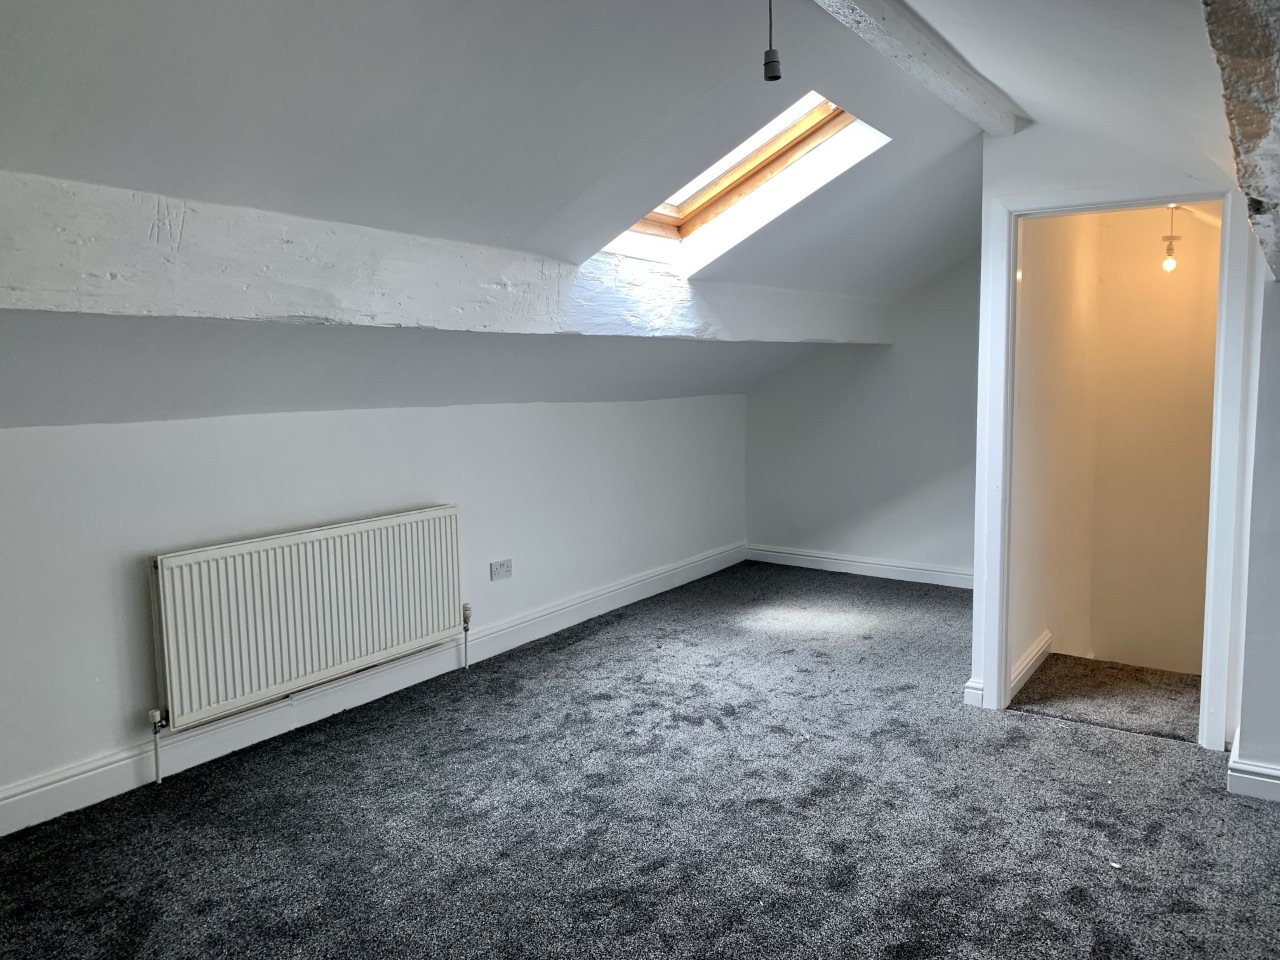 3 bedroom mid terraced house For Sale in Calderdale - Photograph 12.